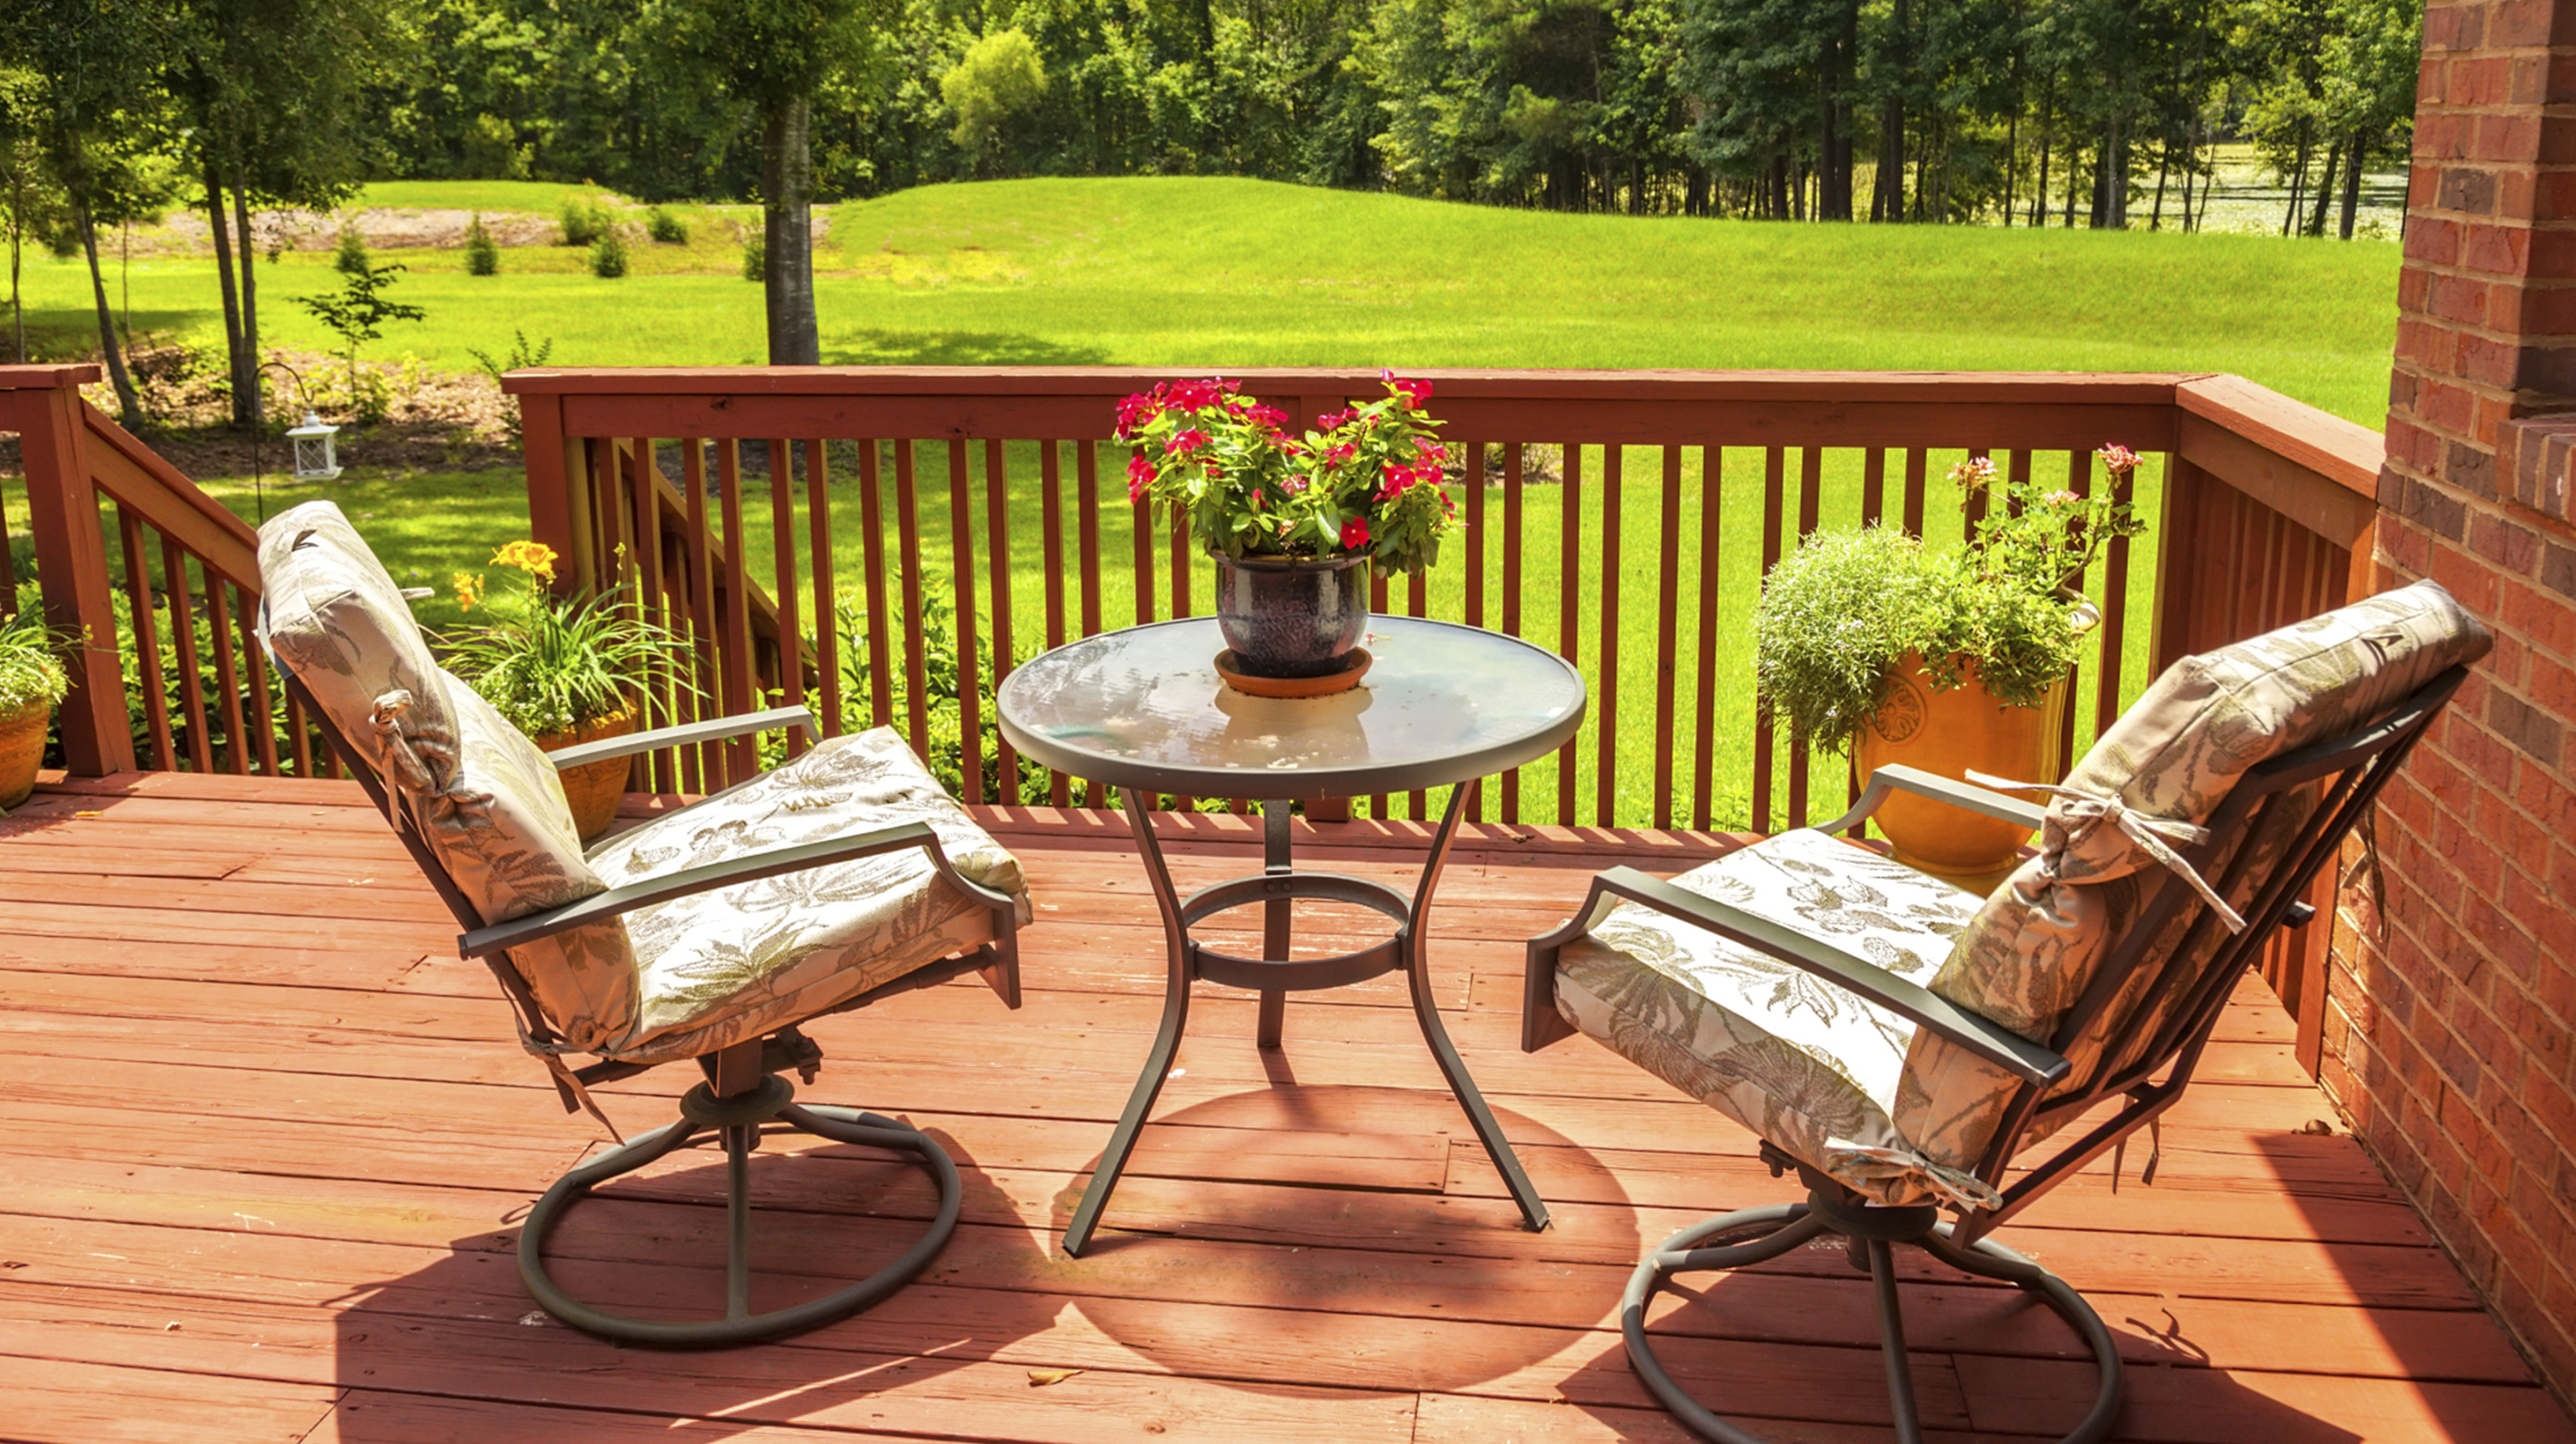 Garden chairs and round table on a decked balcony overlooking a garden